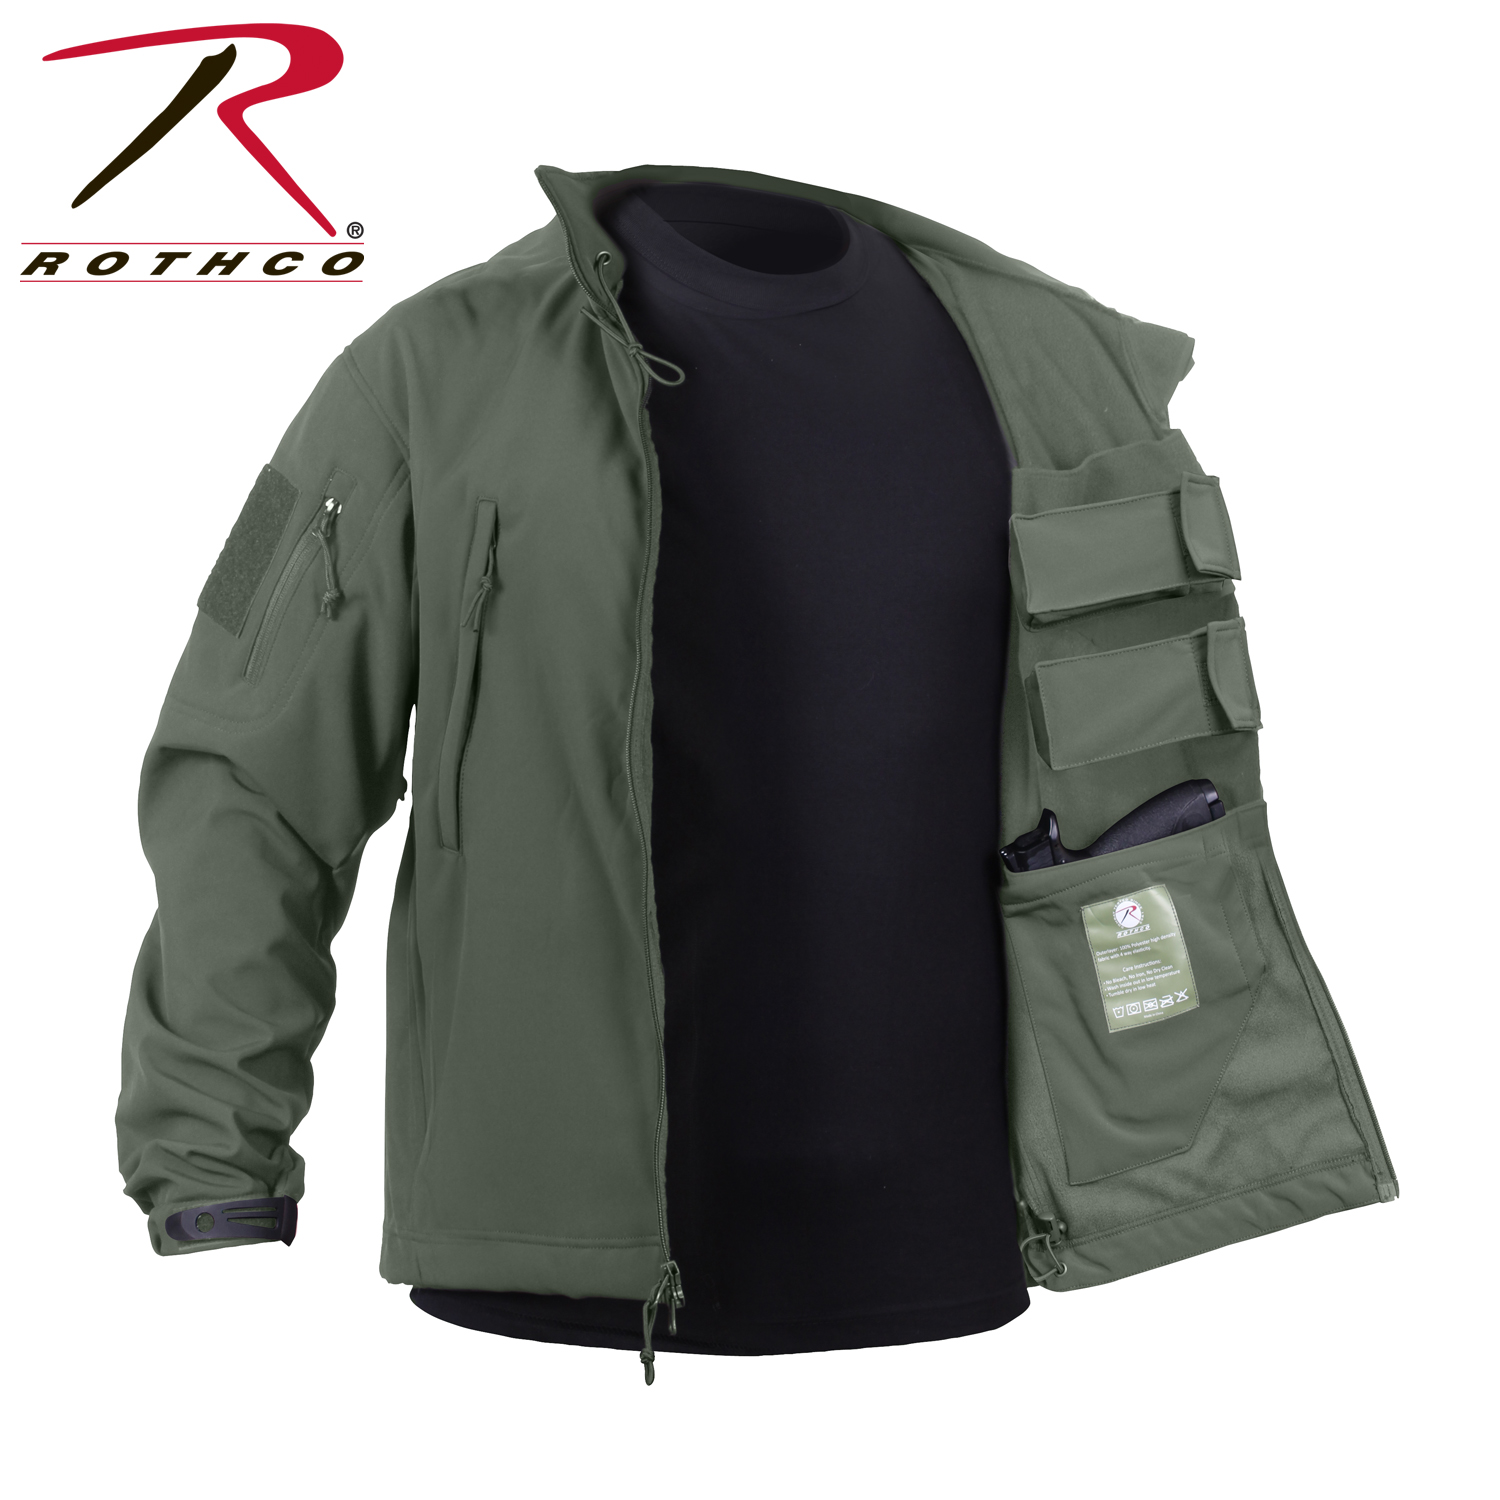 Rothco 55585 Concealed Carry Soft Shell Jacket